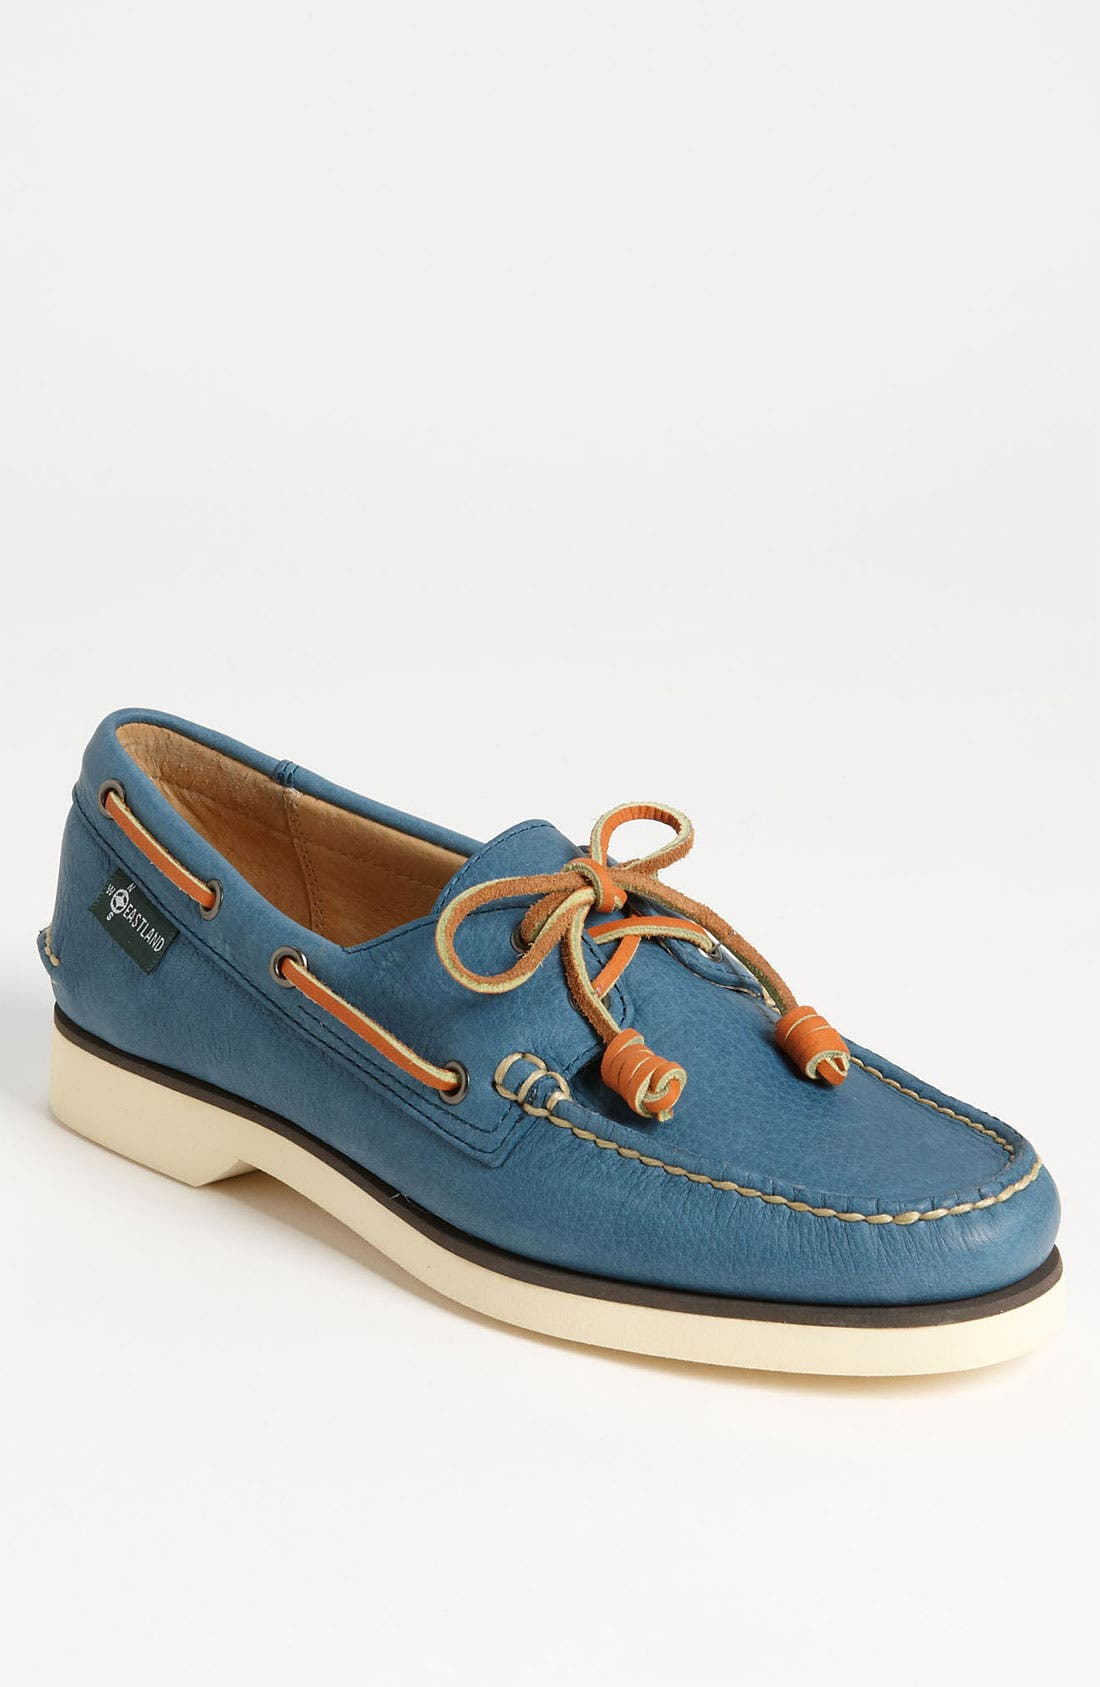 Alternate Image 1 Selected - Eastland 'Washburn 1955' Boat Shoe